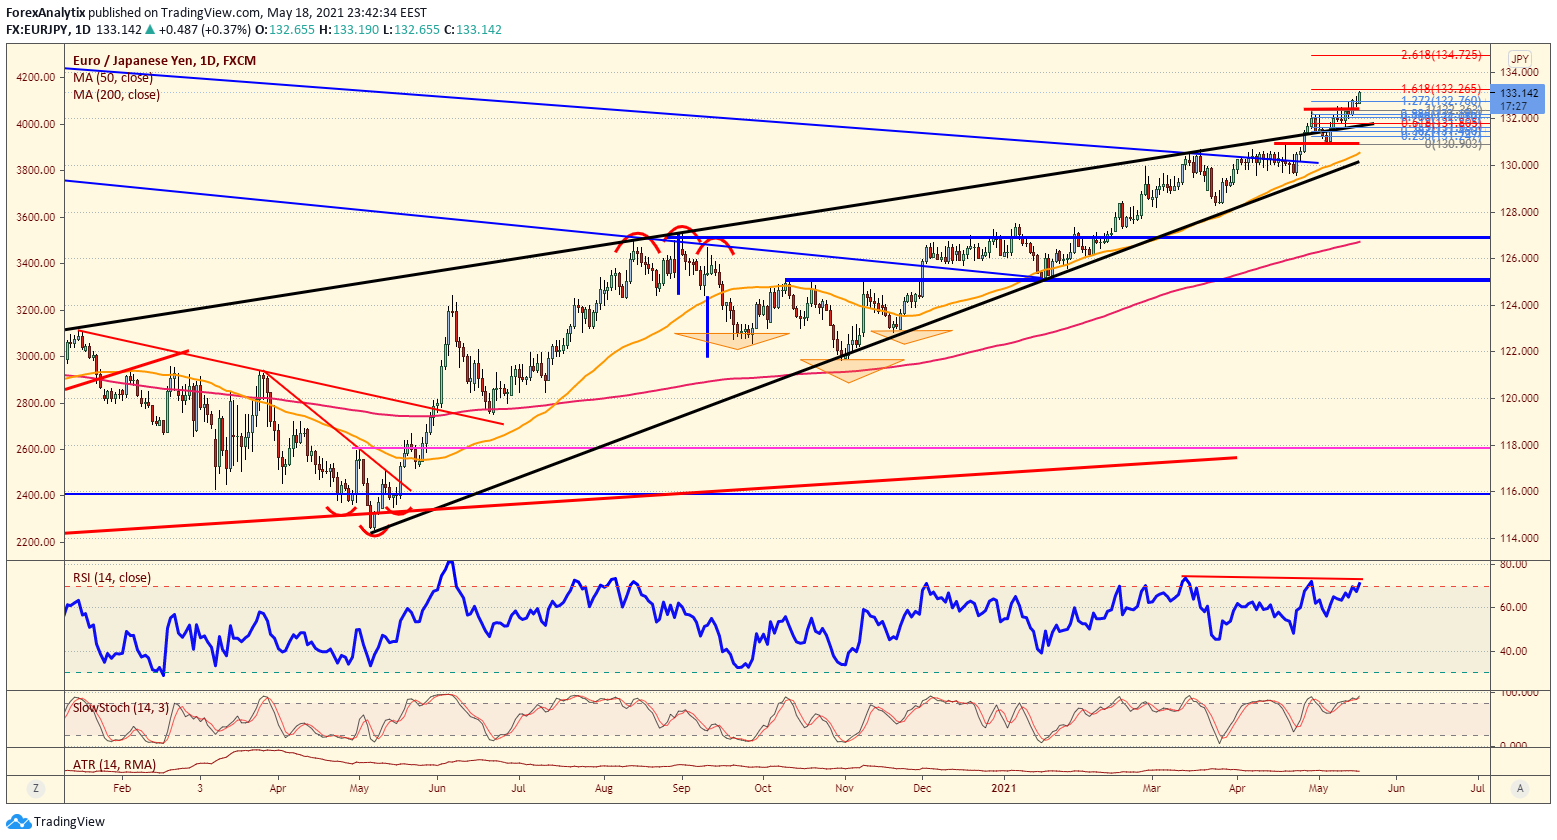 EUR/JPY Daily Chart.